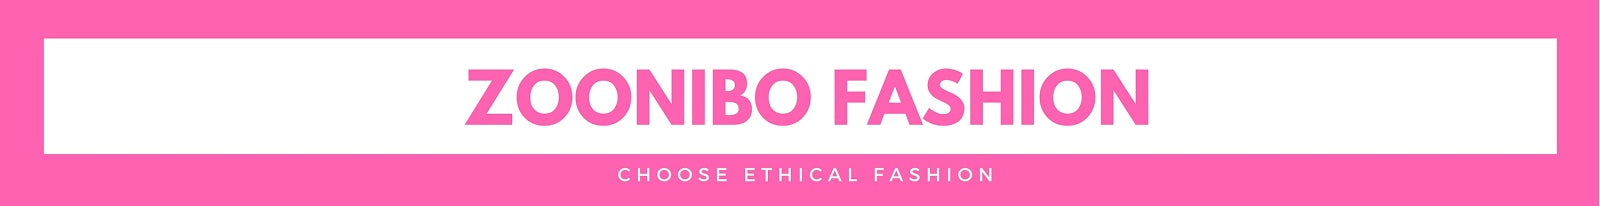 About US - Ethical Fashion - Zoonibo